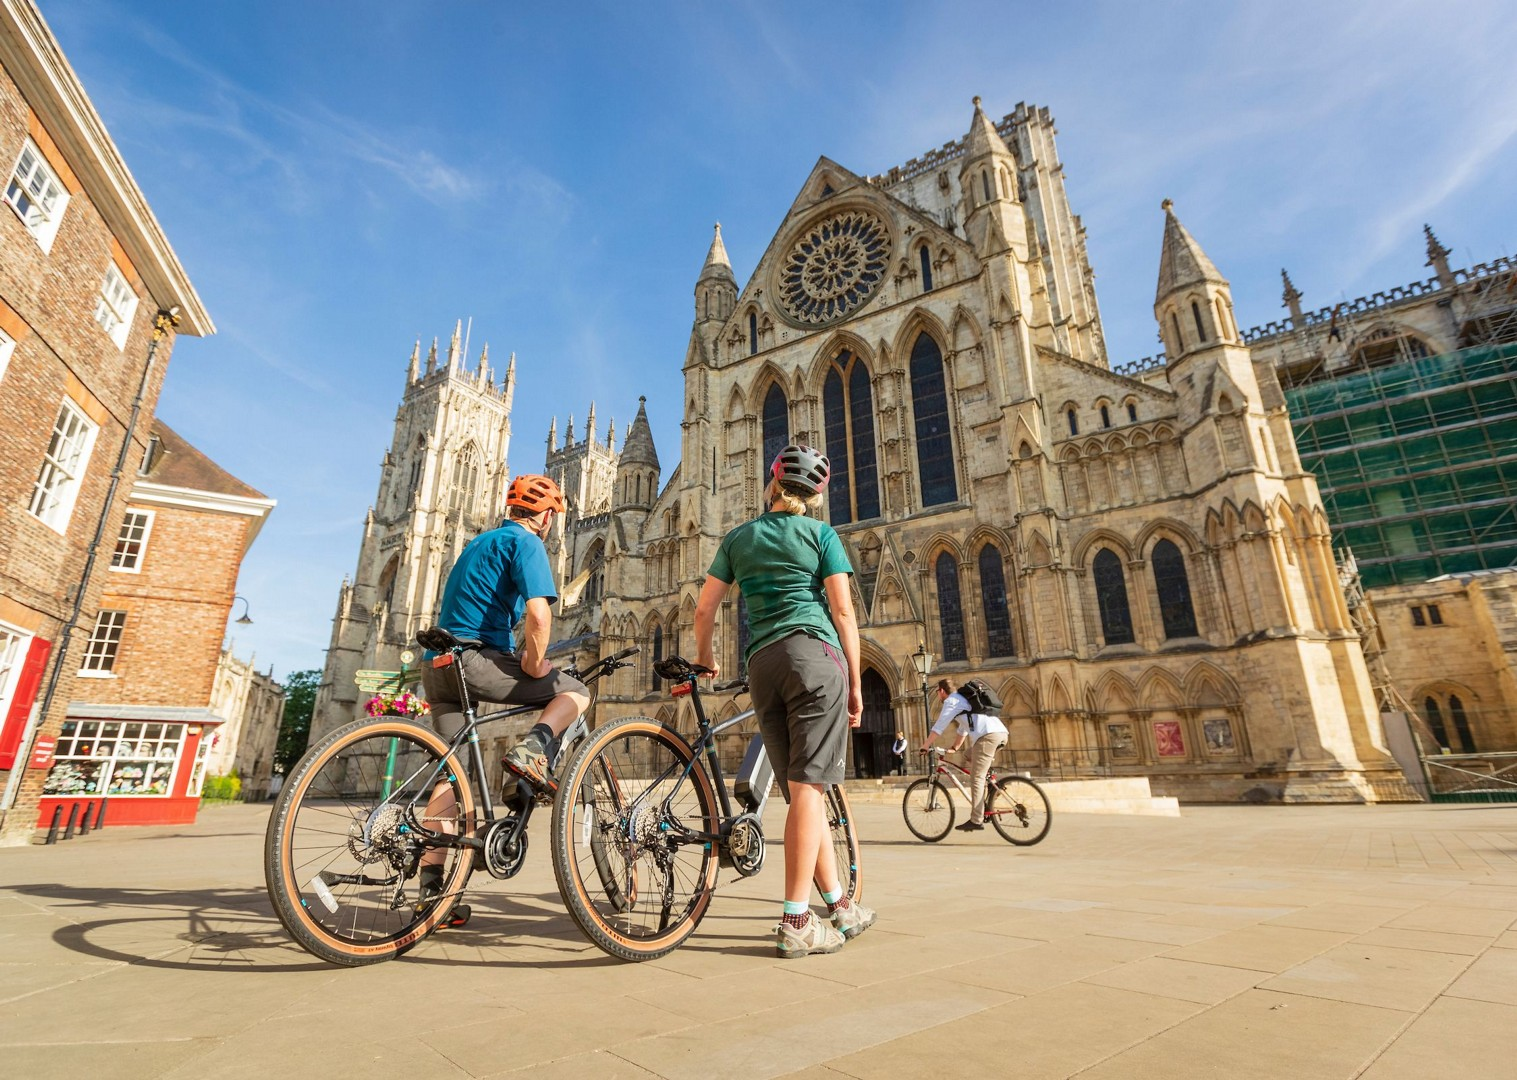 RussellBurton_20180626_2DX7625.jpg - UK - Way of the Roses 5 Days Cycling - Self-Guided Leisure Cycling Holiday - Leisure Cycling